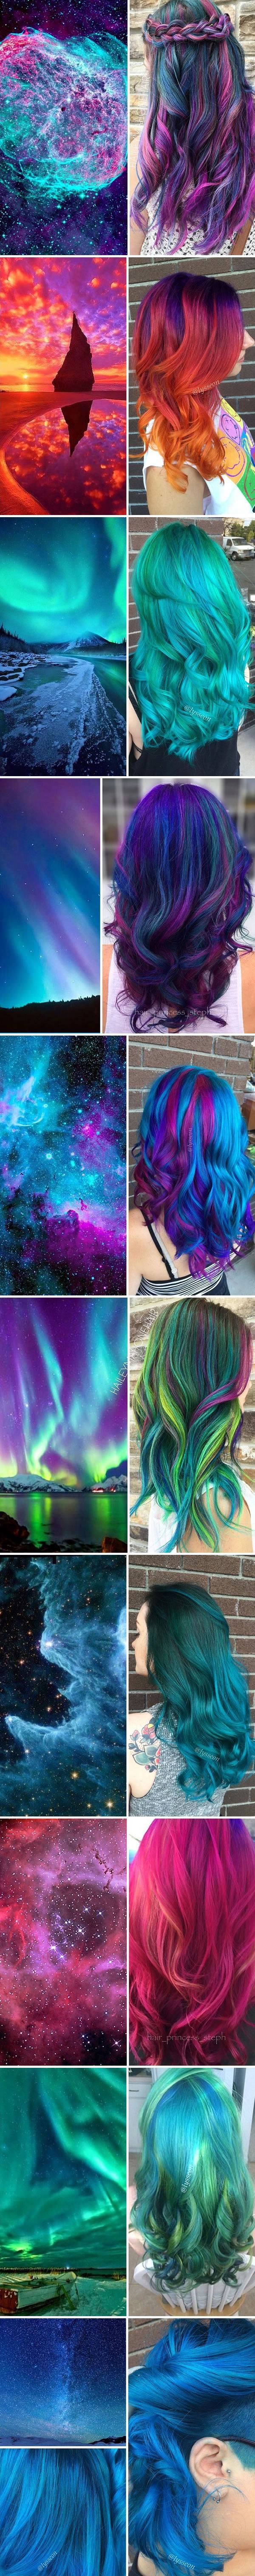 """This """"Galaxy Hair"""" trend is actually quite mesmerizing - Can't decide which one I want most"""